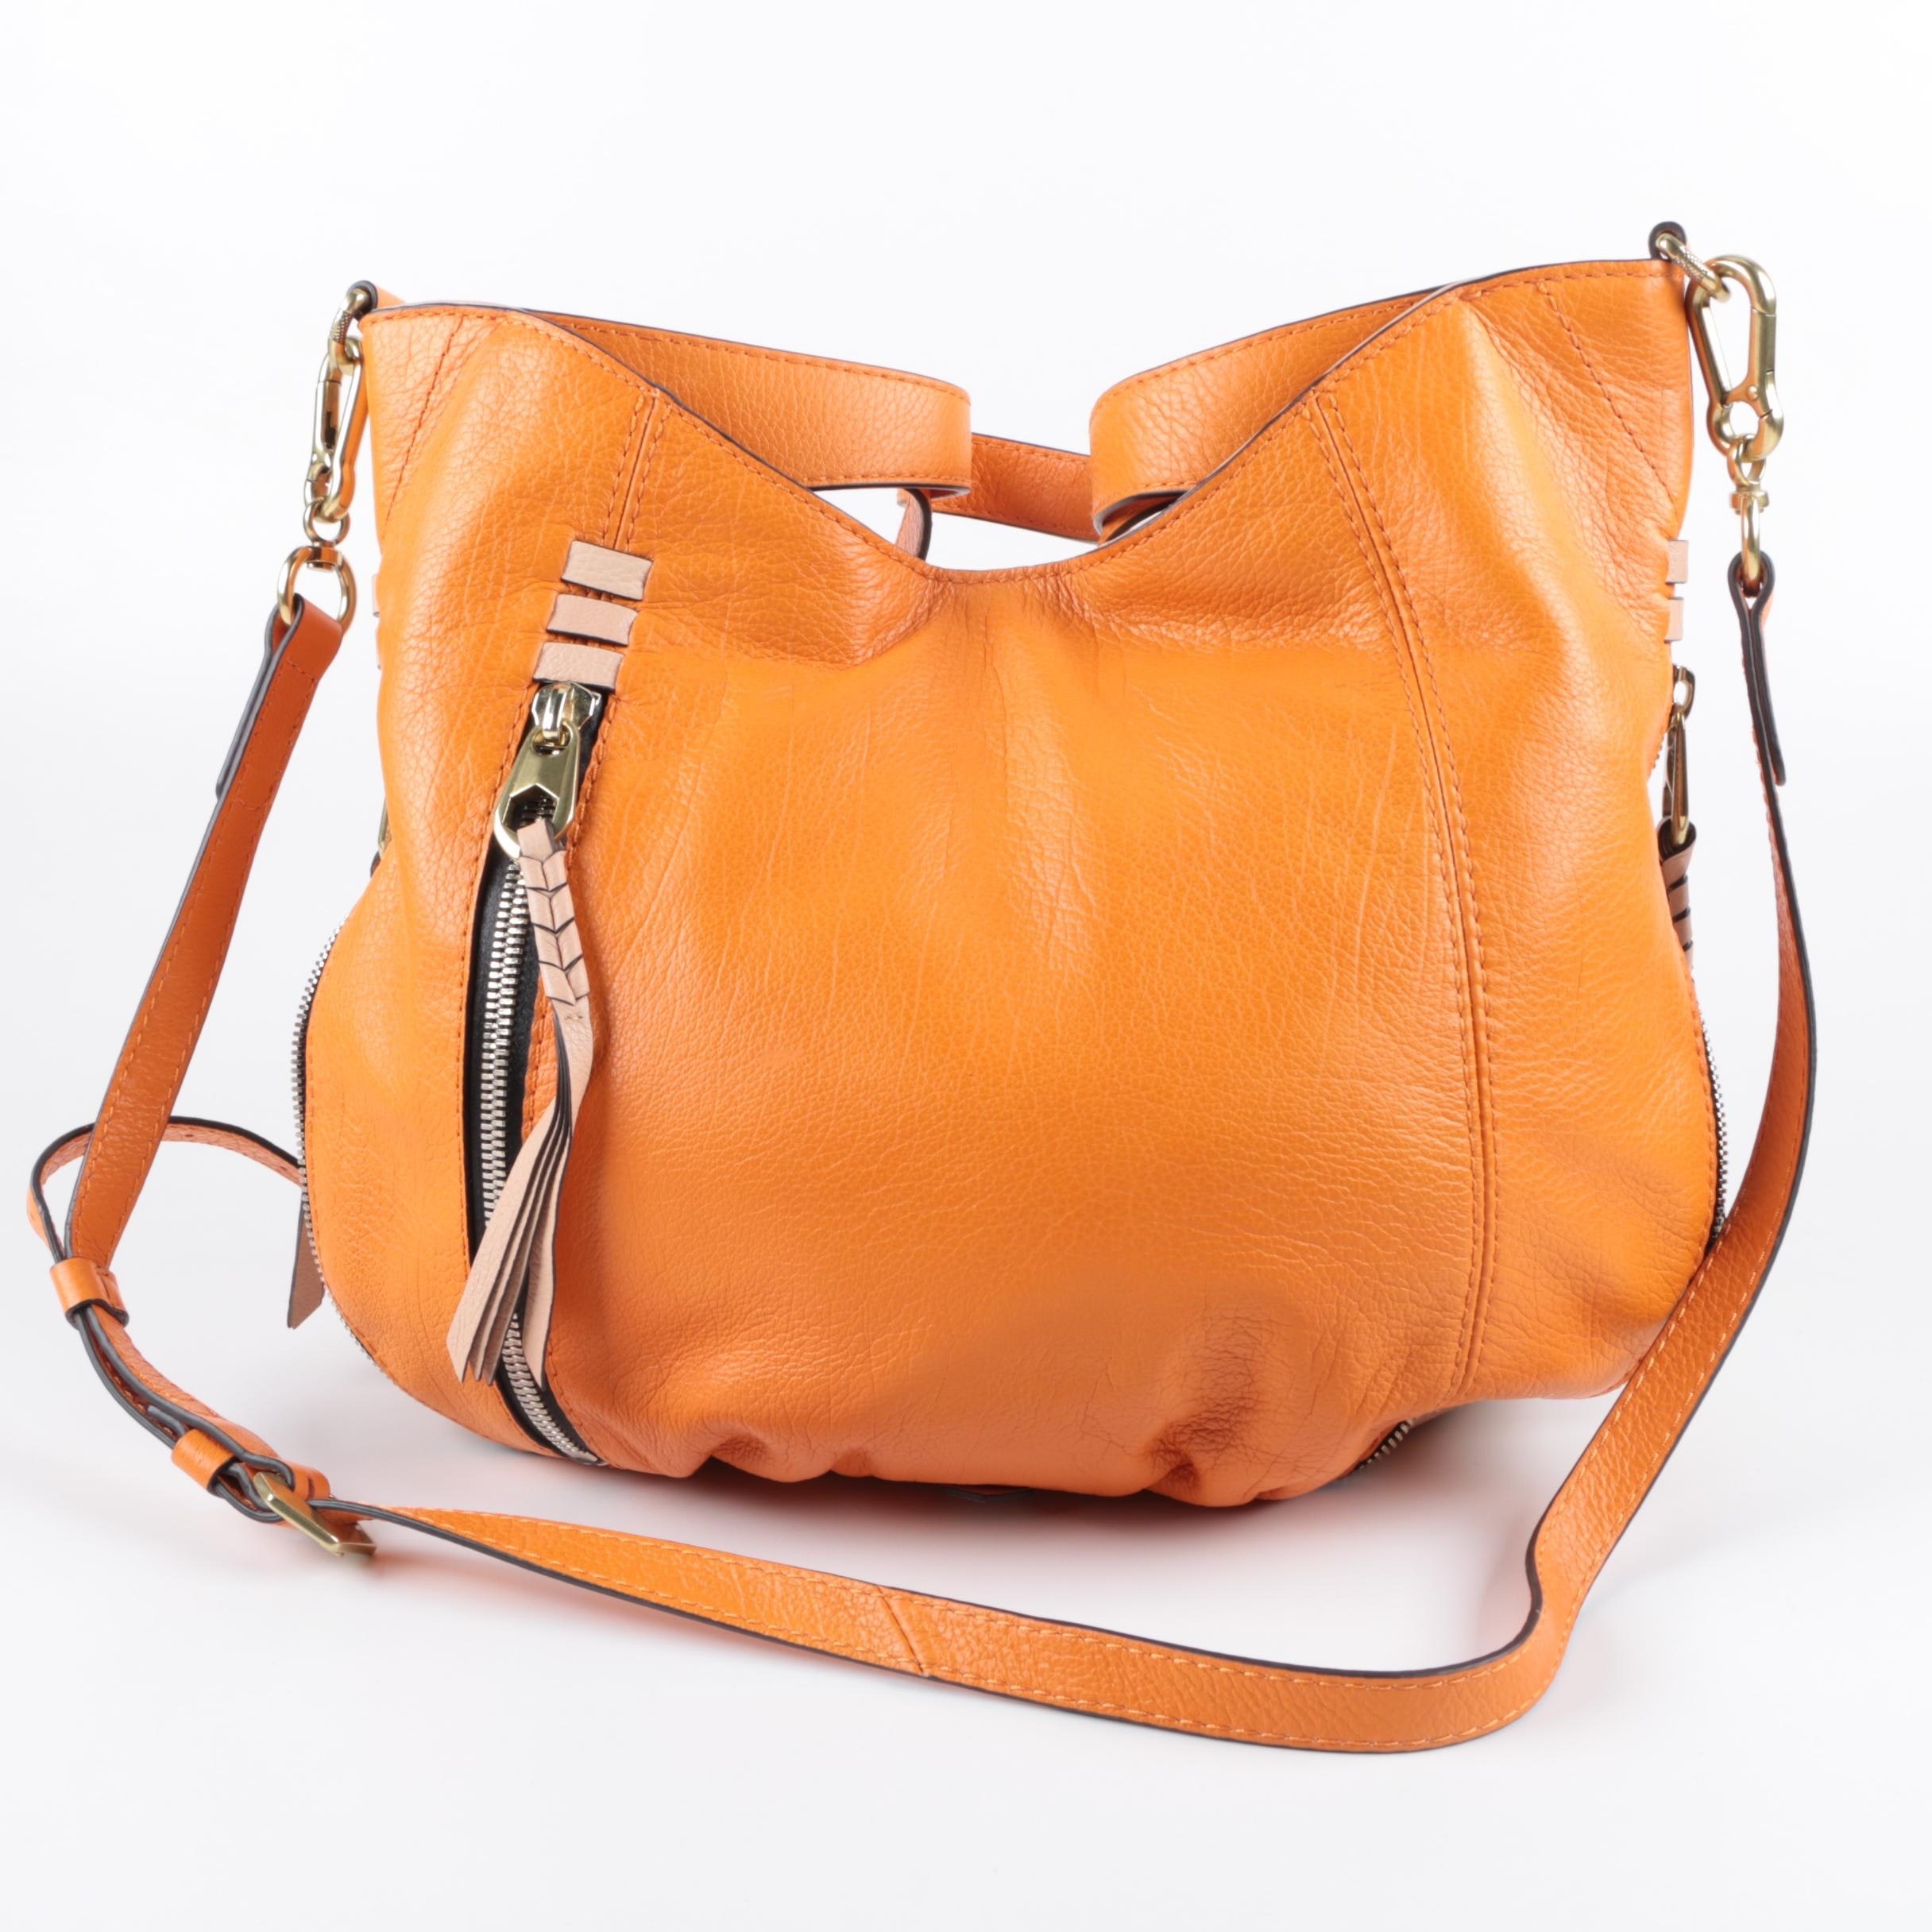 Oryany Orange Leather Handbag